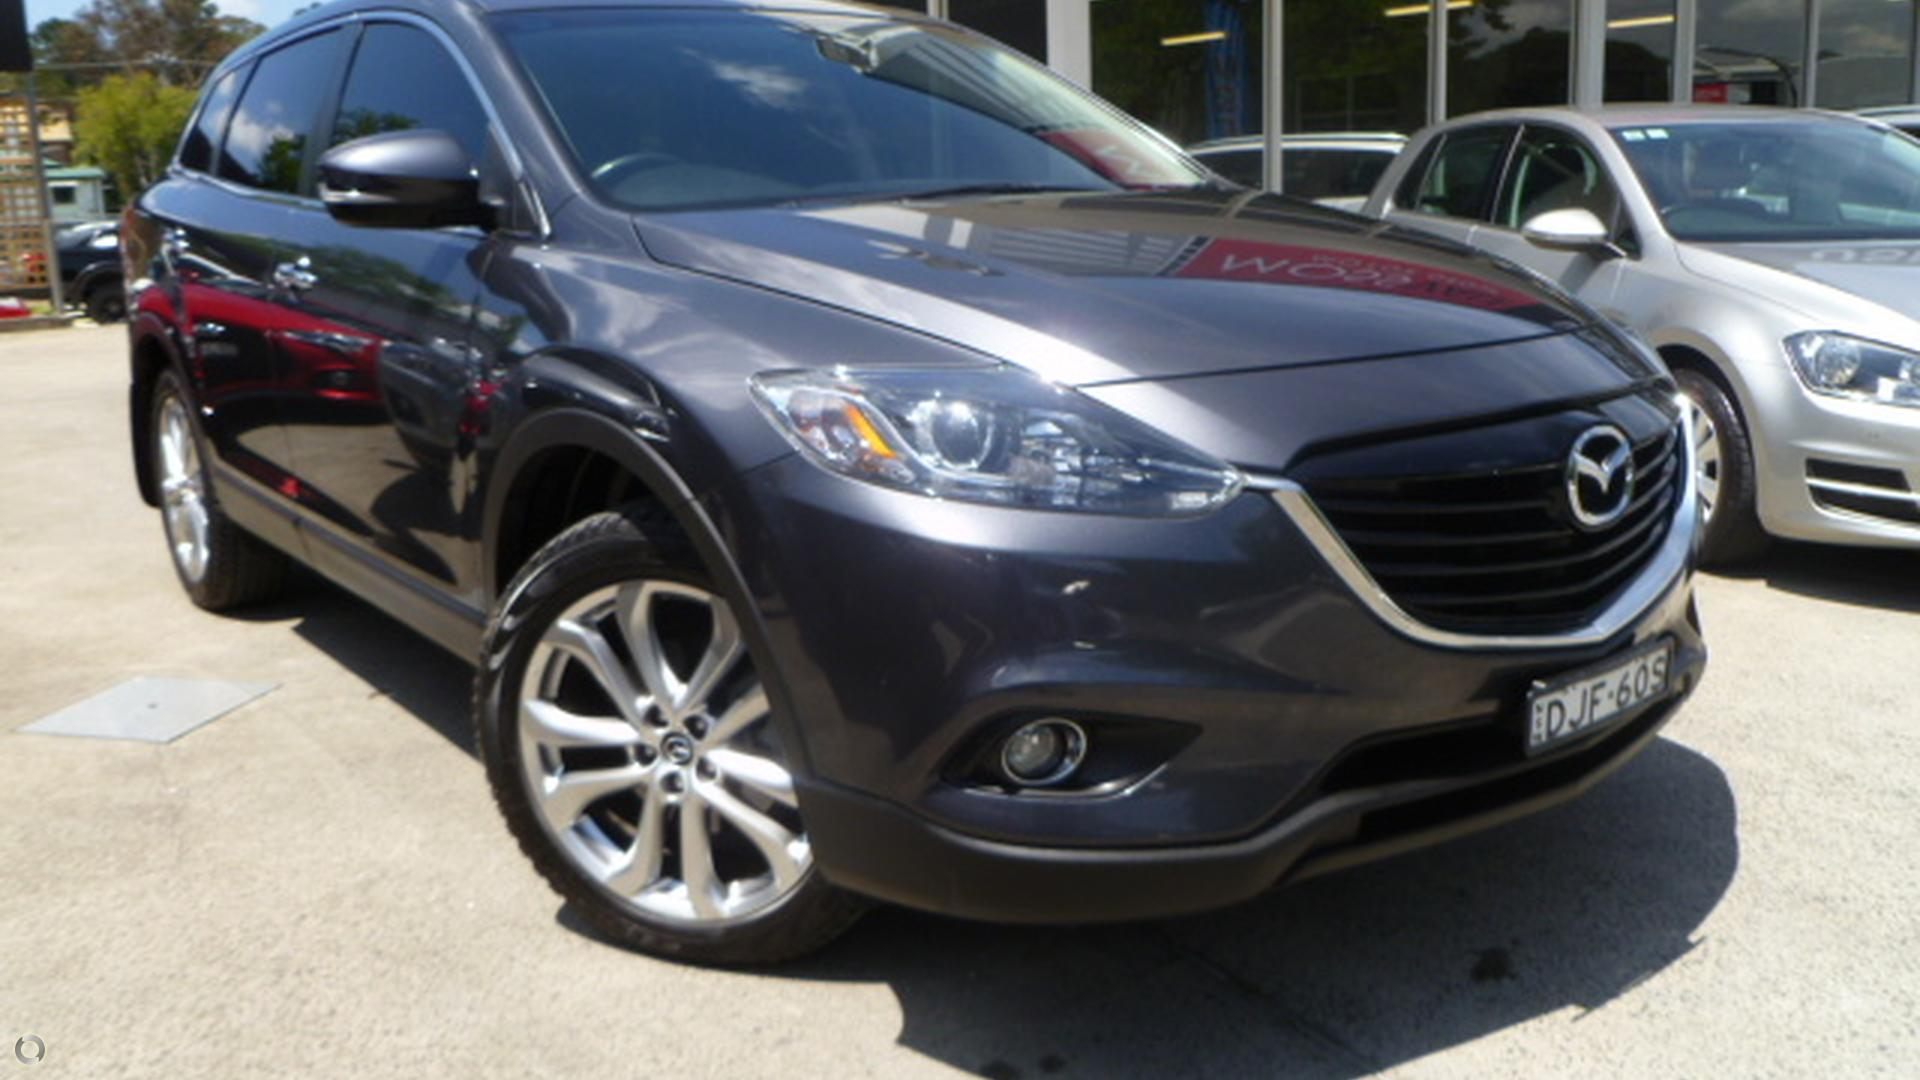 2012 Mazda Cx-9 Luxury